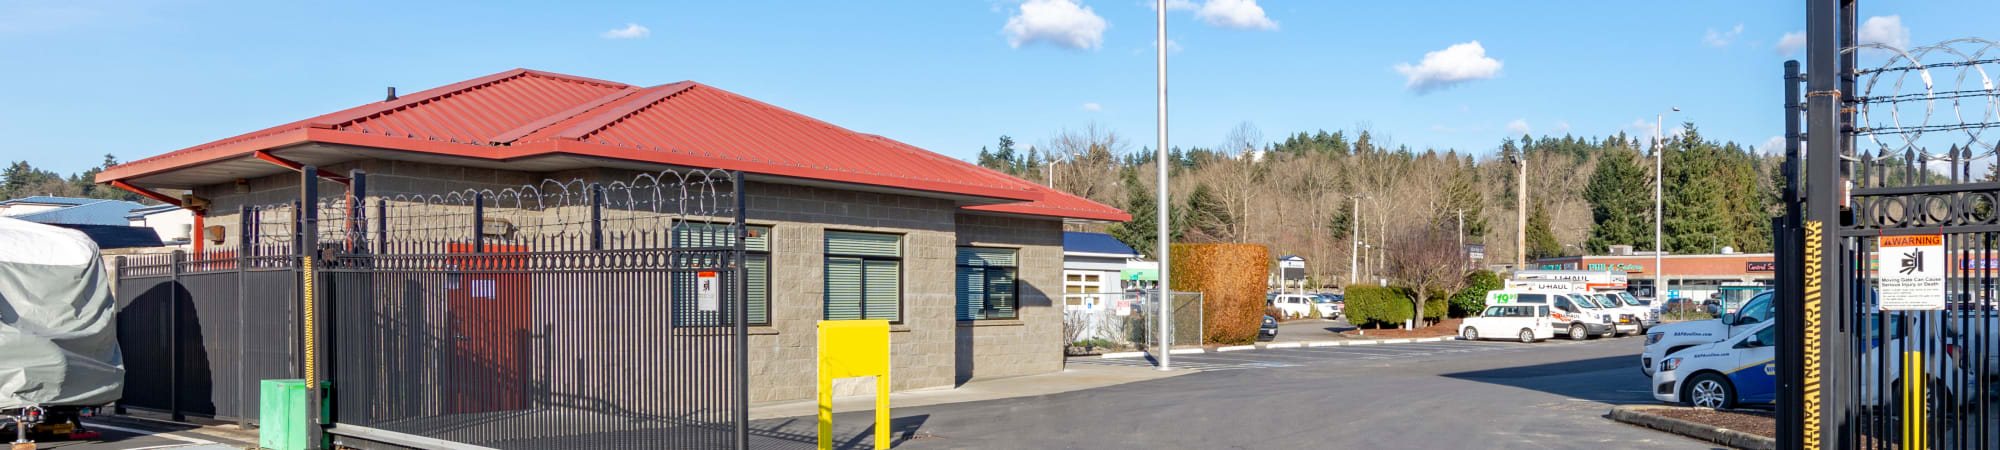 Hours and directions to Glacier West Self Storage in Kent, Washington